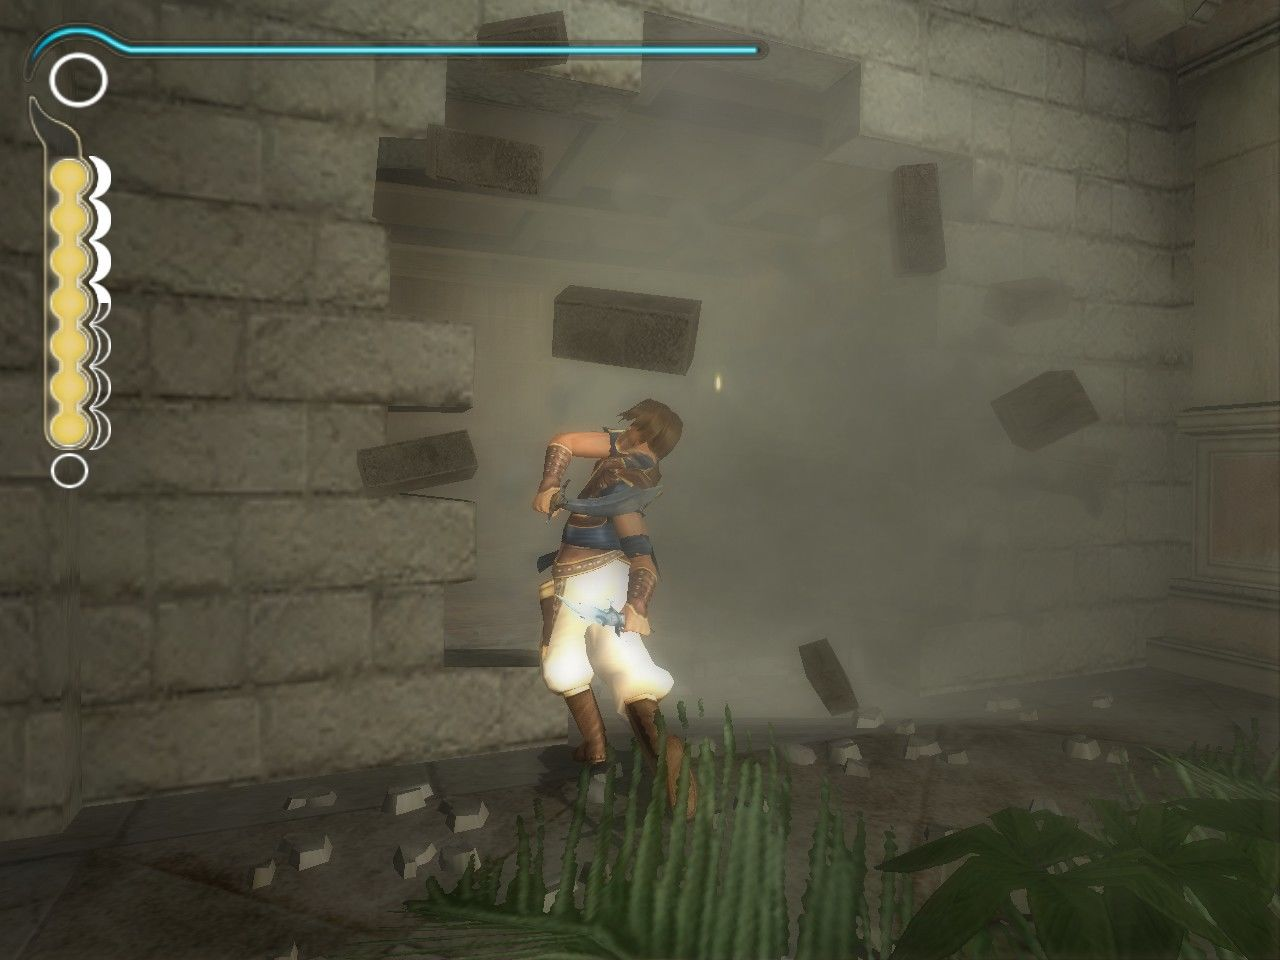 Prince of Persia: The Sands of Time Windows Second sword allows you to destroy walls.